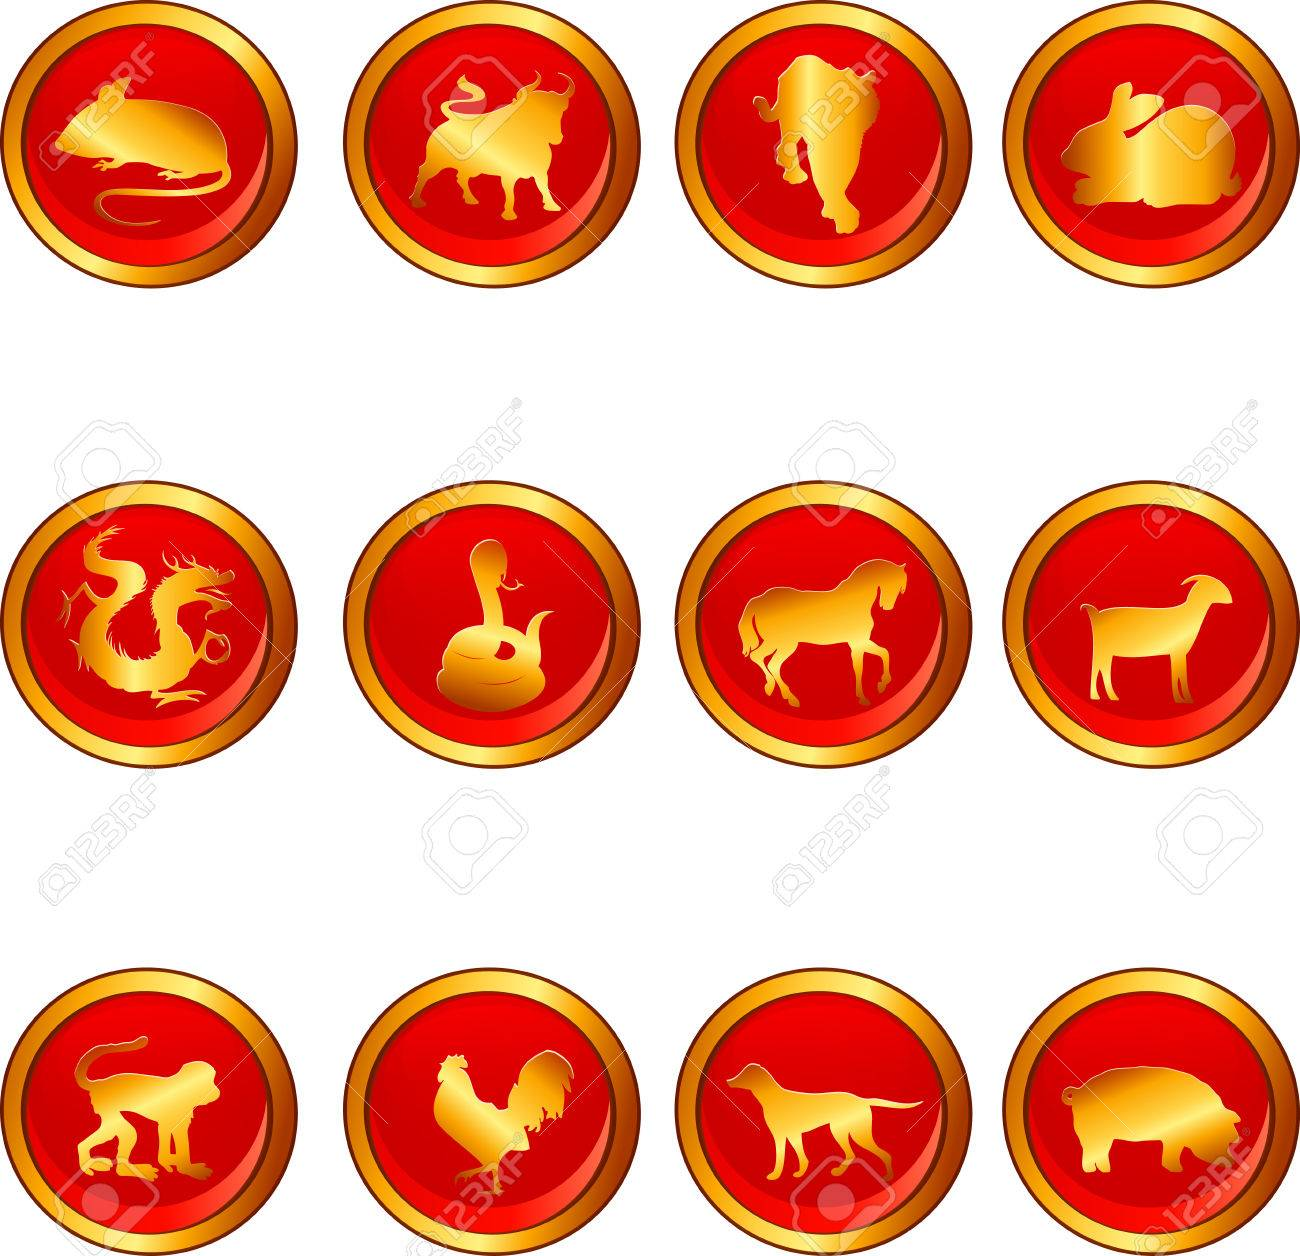 Illustration Of Chinese Astrology Signs Royalty Free Cliparts ...